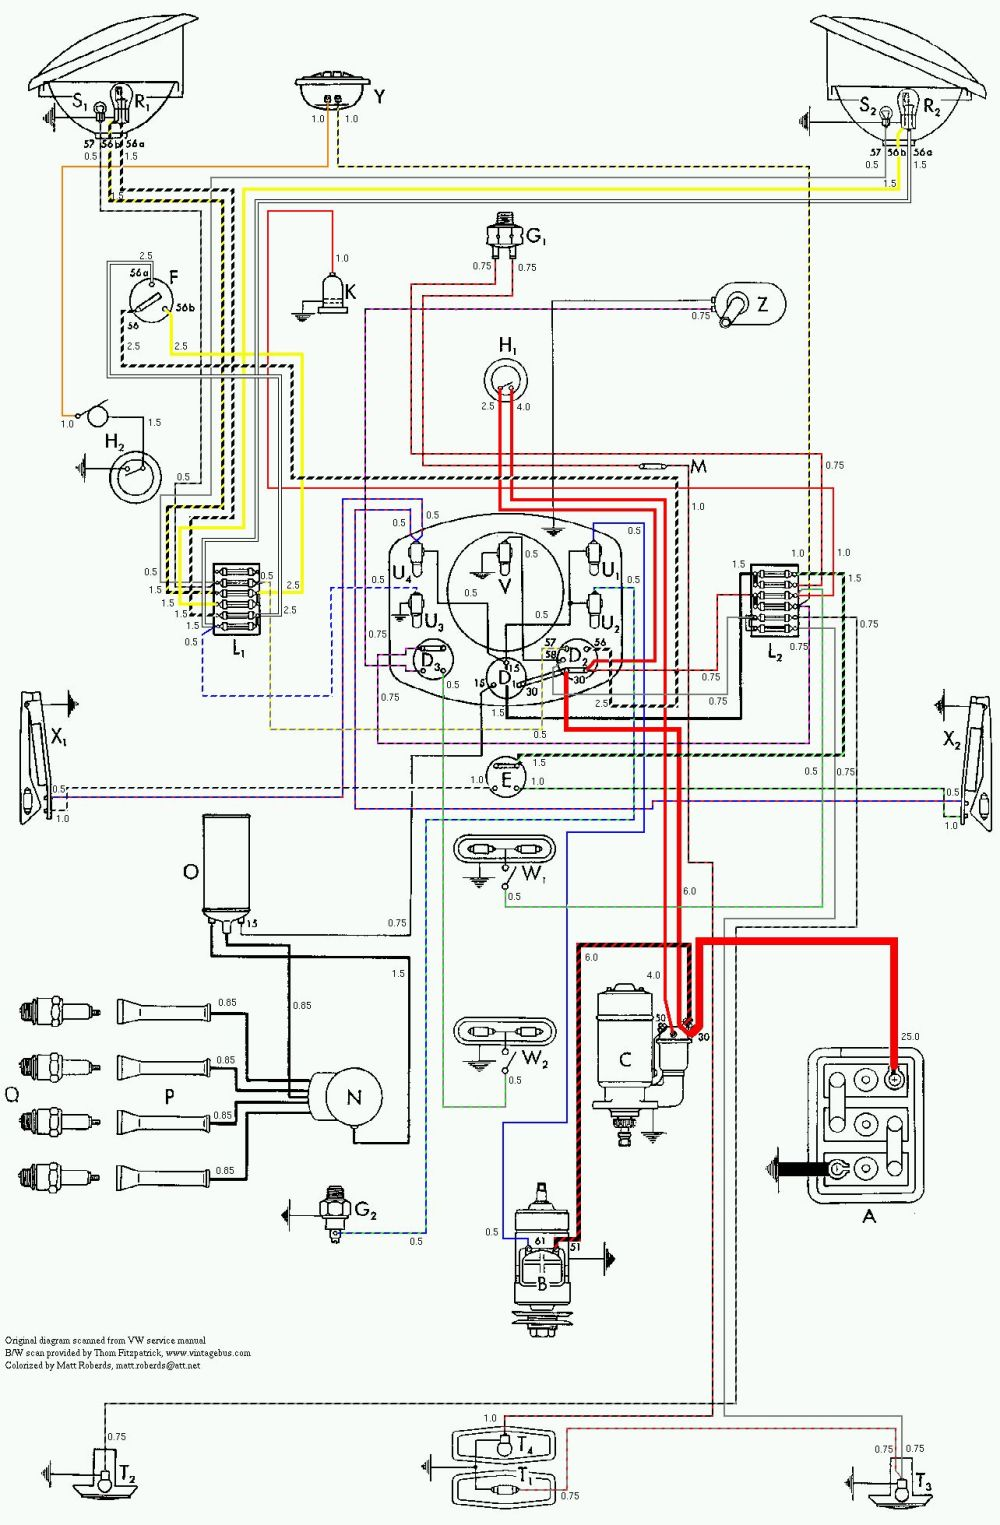 medium resolution of wiring diagram also vanagon subaru conversion wiring furthermore rv subaru vanagon wiring diagram